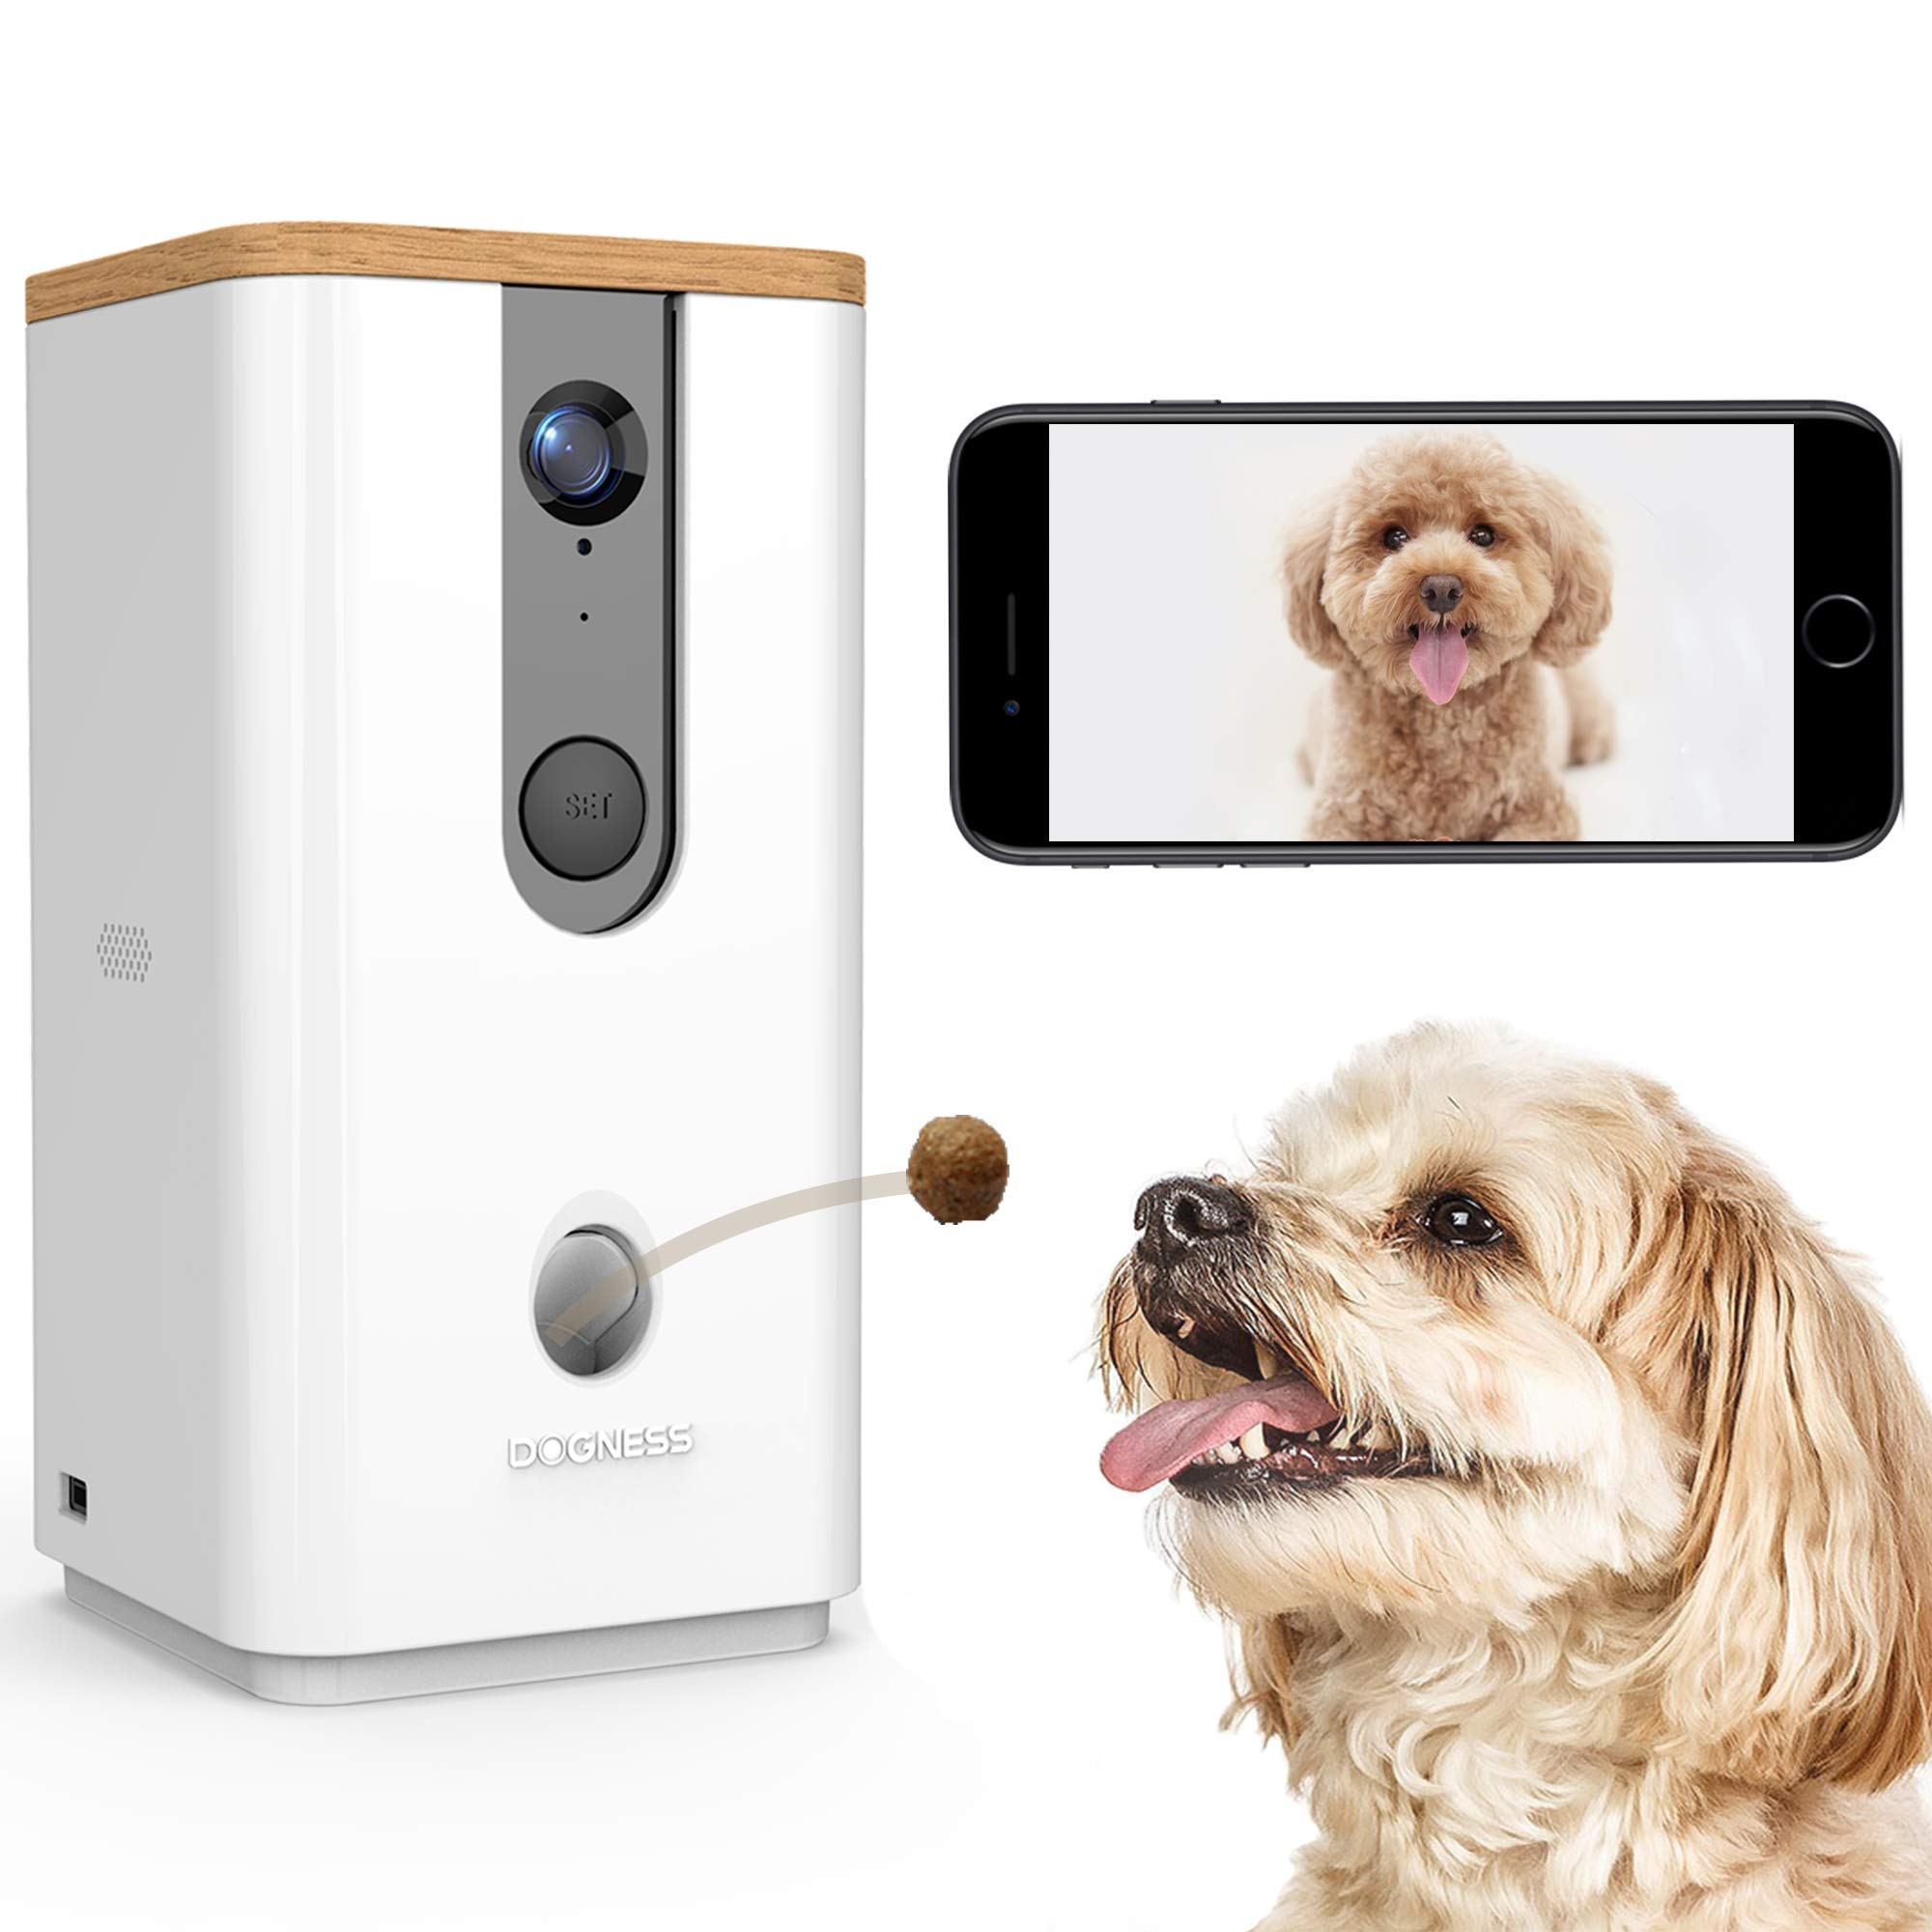 DOGNESS Dog Camera Treat Dispenser,HD Video WiFi Pet Camera with 2-Way Audio and Night Vision,Monitor Your Dogs and Cats